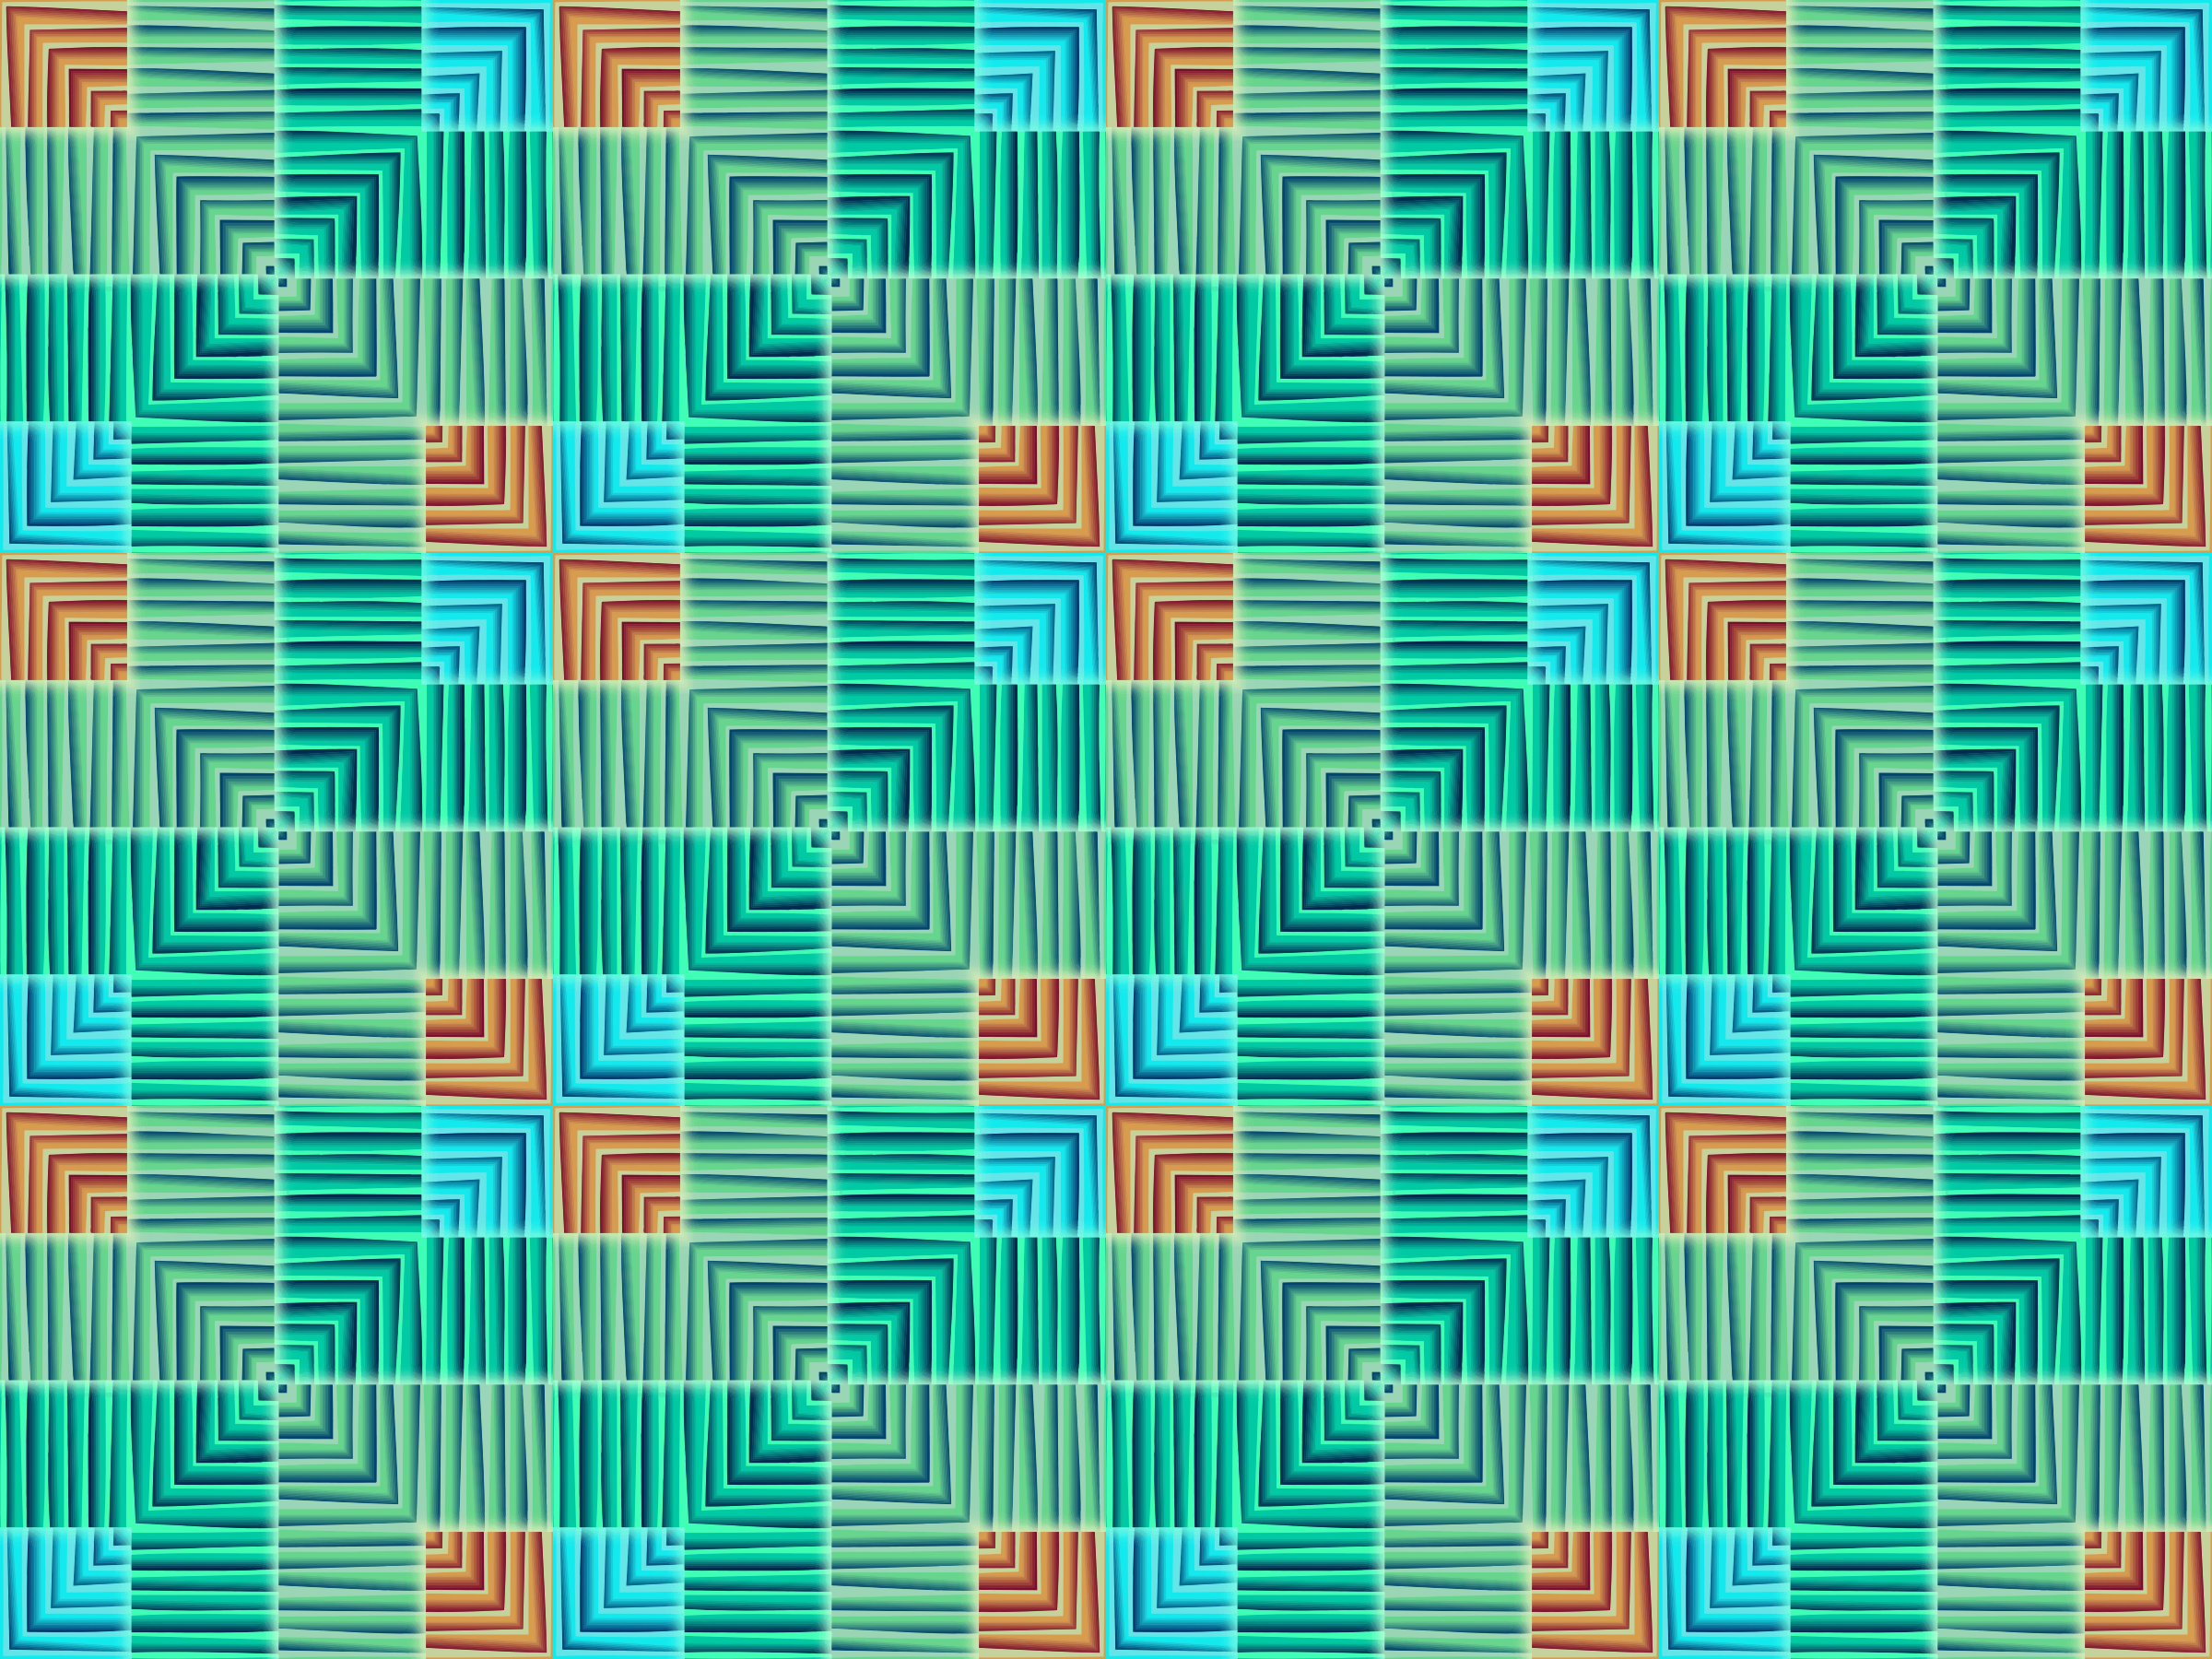 Background pattern 323 (colour 4) by Firkin